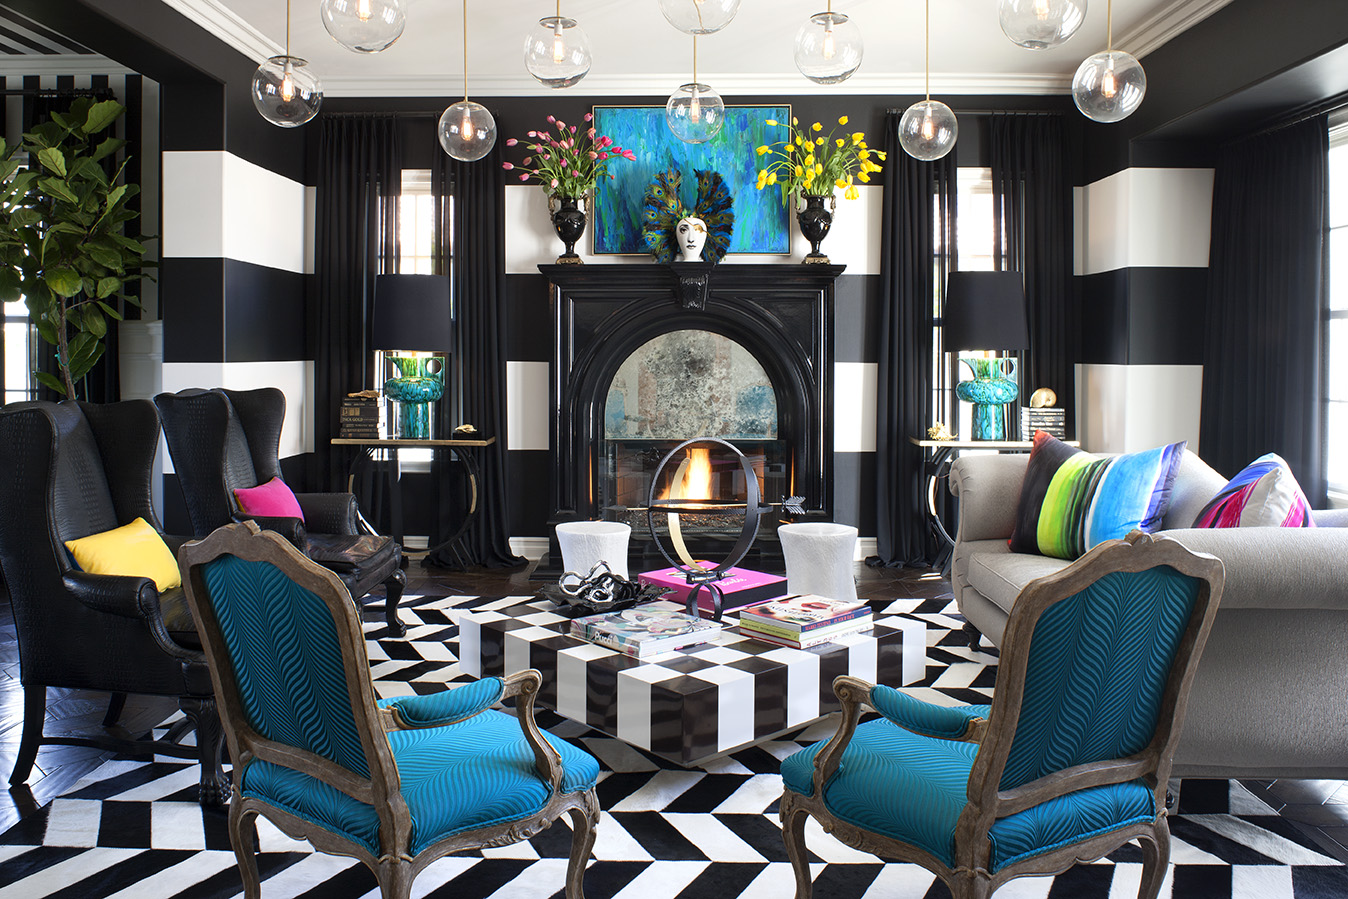 kourtney kardashians celebrity living room better decorating bible blog checkered coffee table striped walls black white blue grey